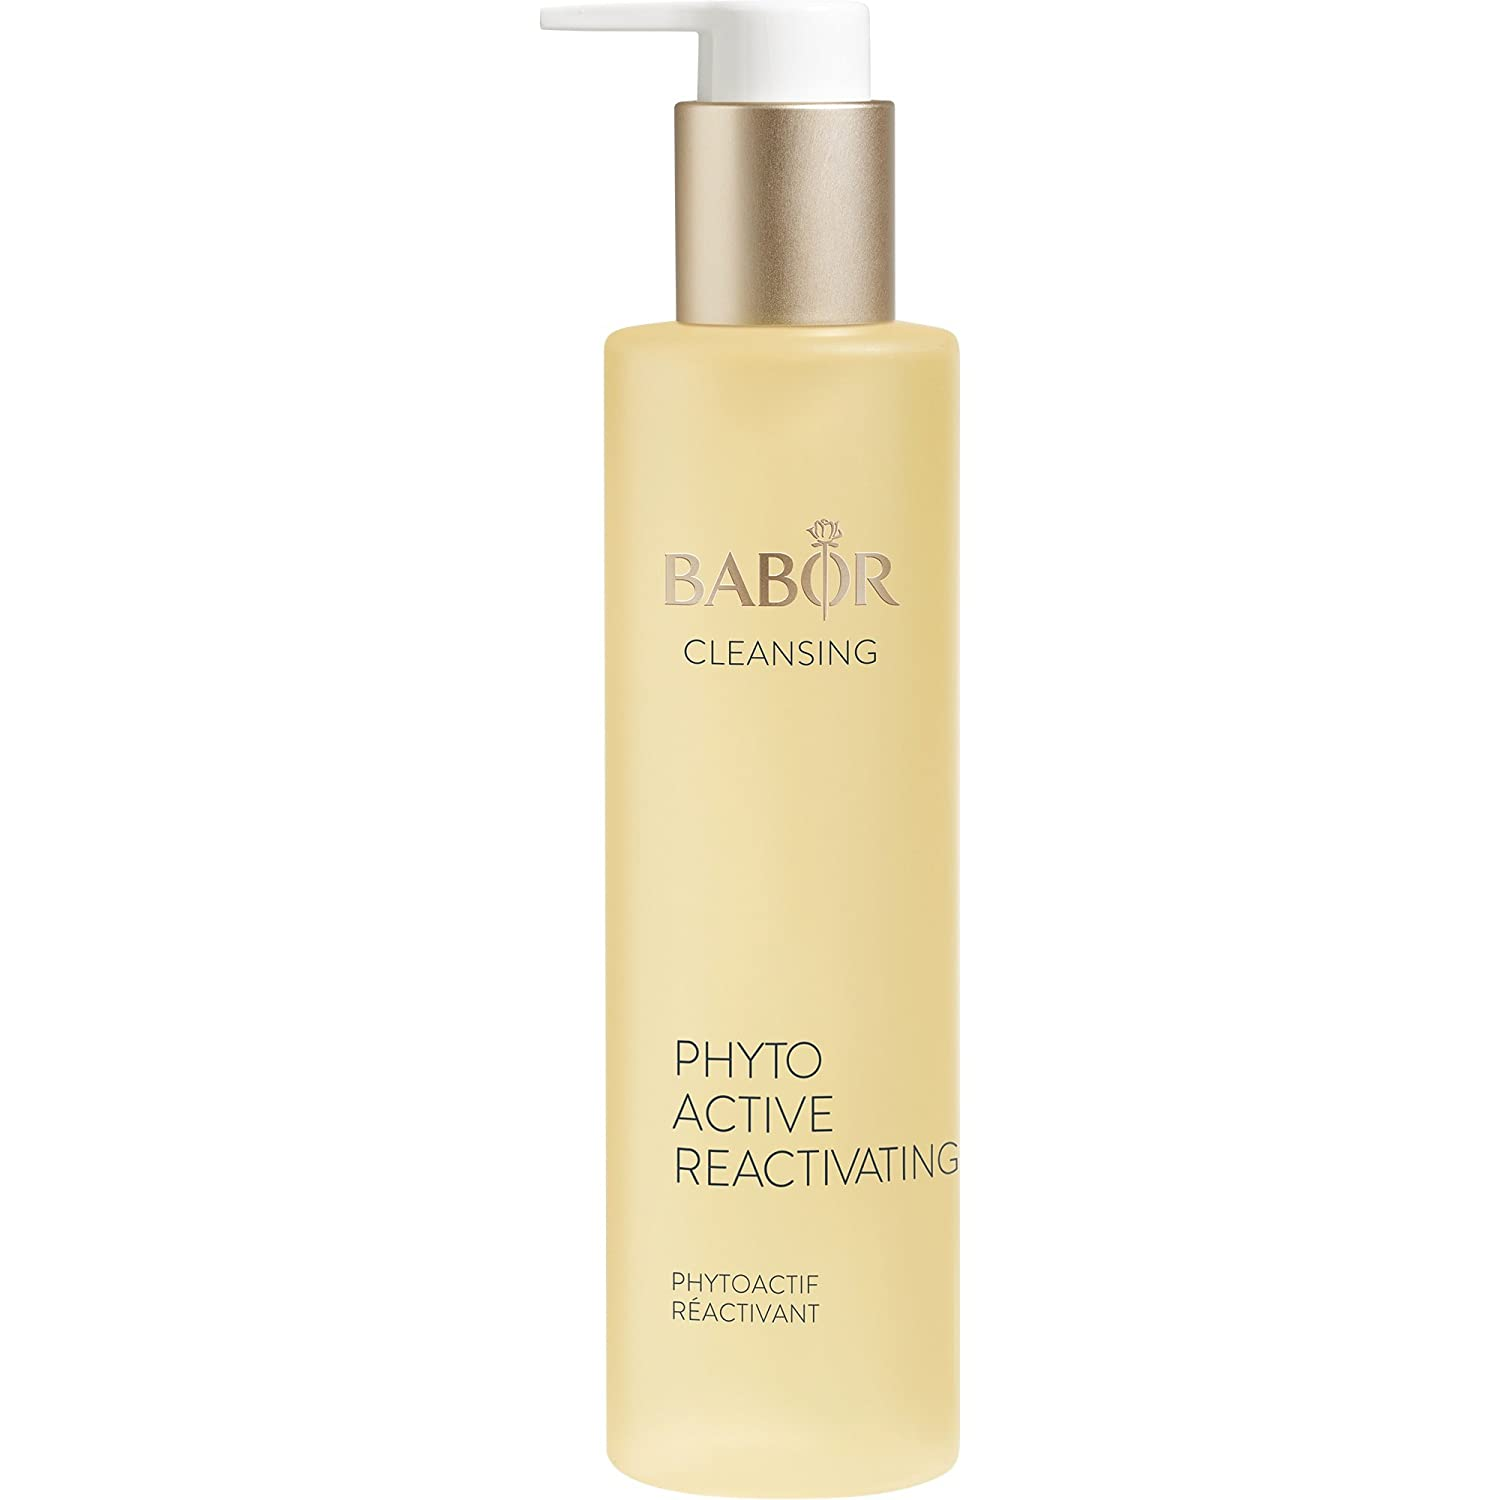 BABOR Cleansing Phytoactive Reactivating for Face, 3.38 Oz